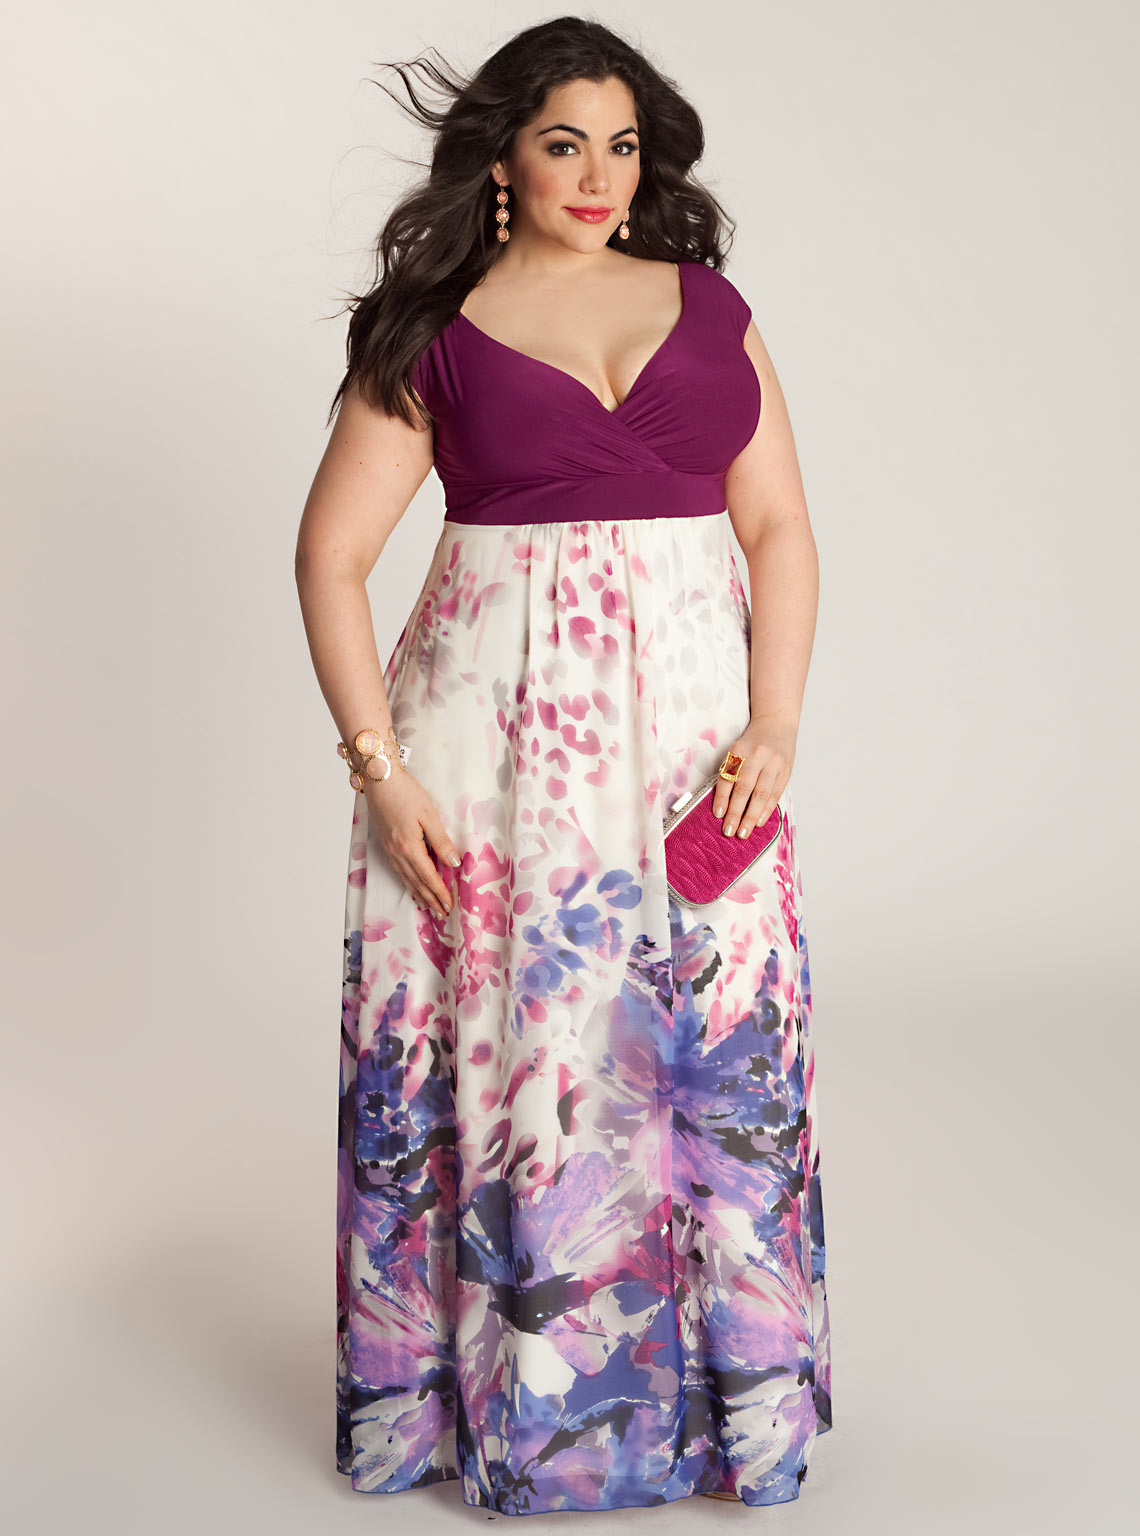 Plus Size Maxi Dresses | Dressed Up Girl